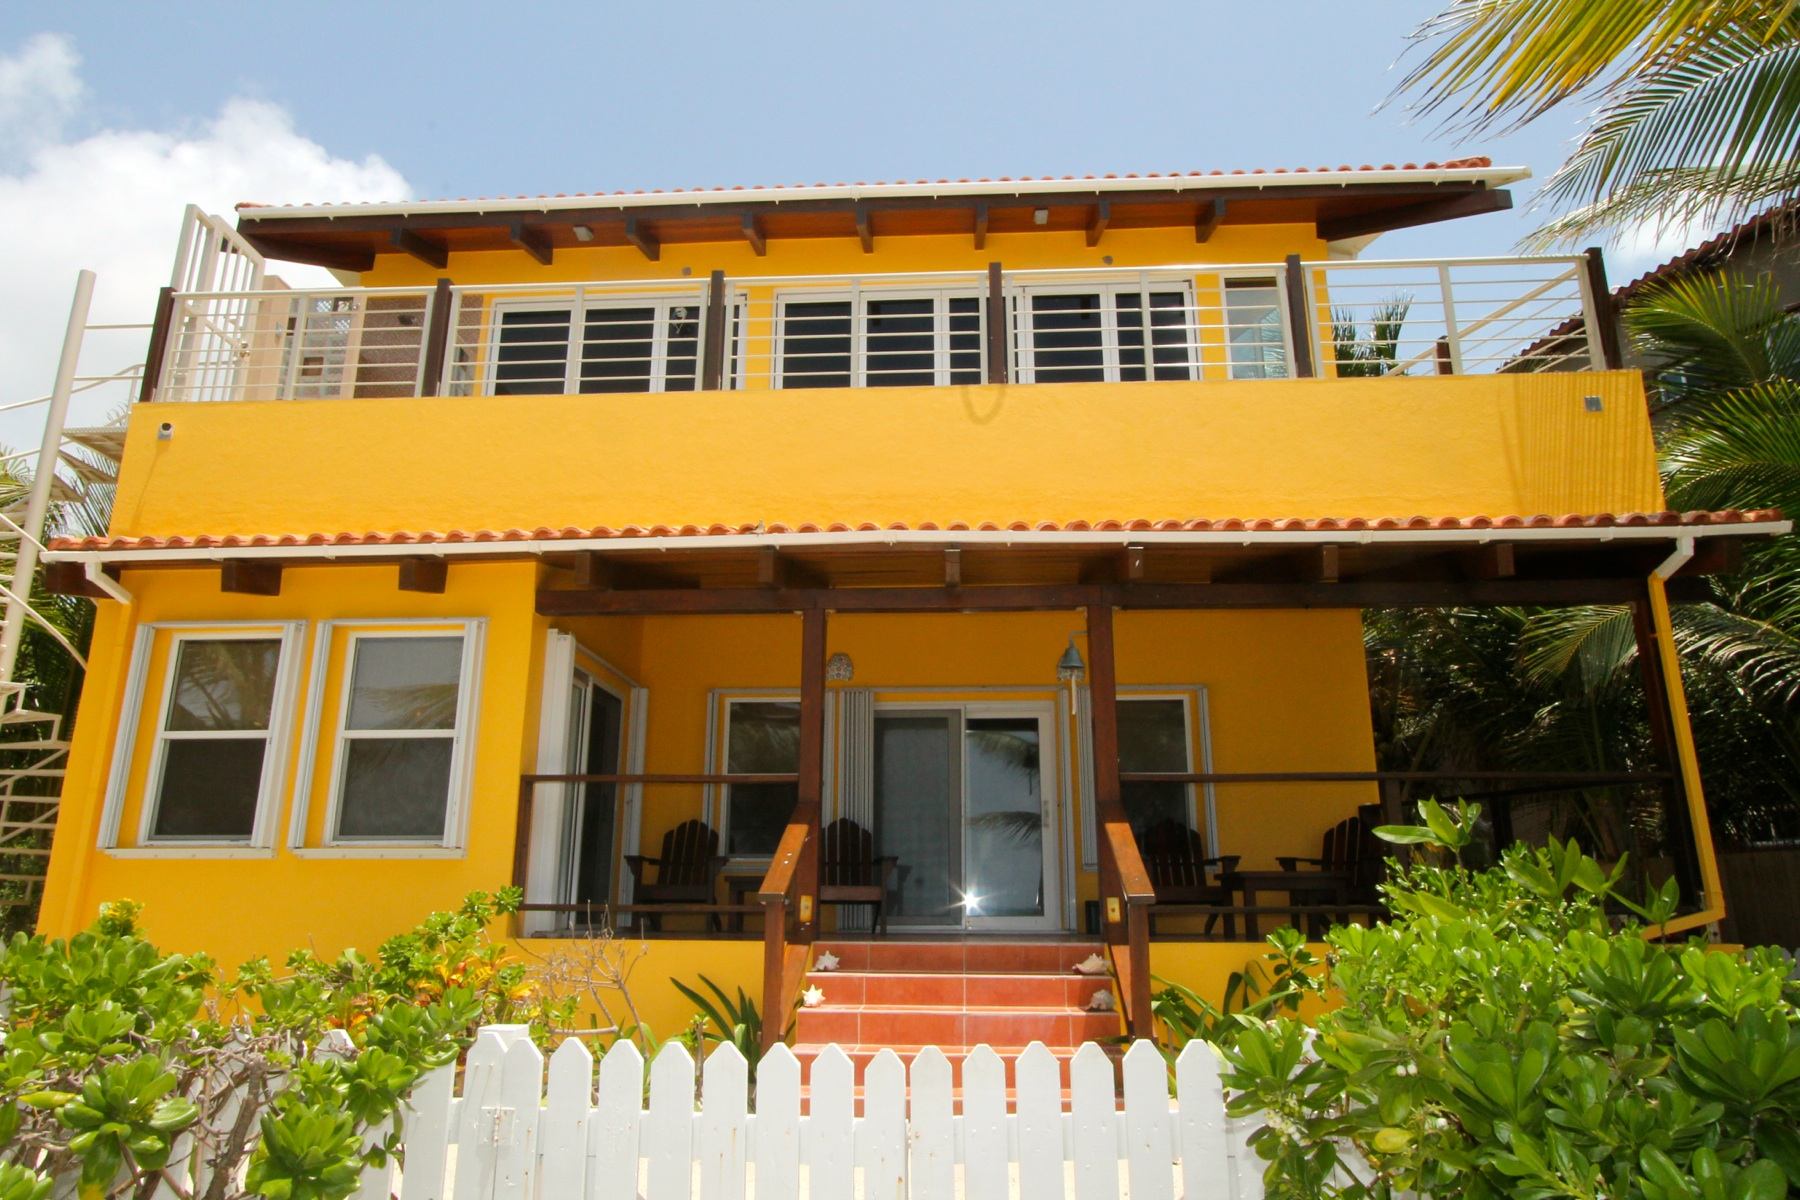 Single Family Home for Rent at Casa Bonita San Pedro Town, Ambergris Caye Belize